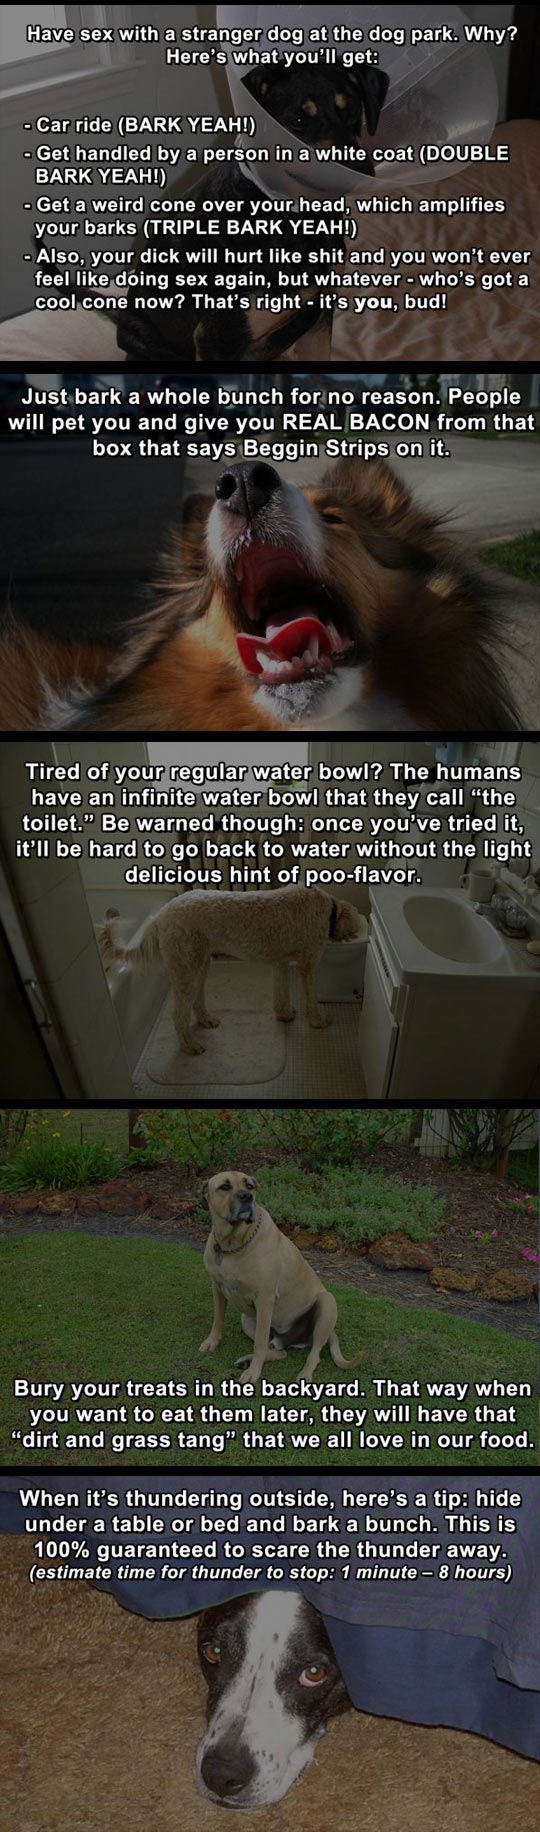 funny-life-hack-dog-ball-owner-toilet